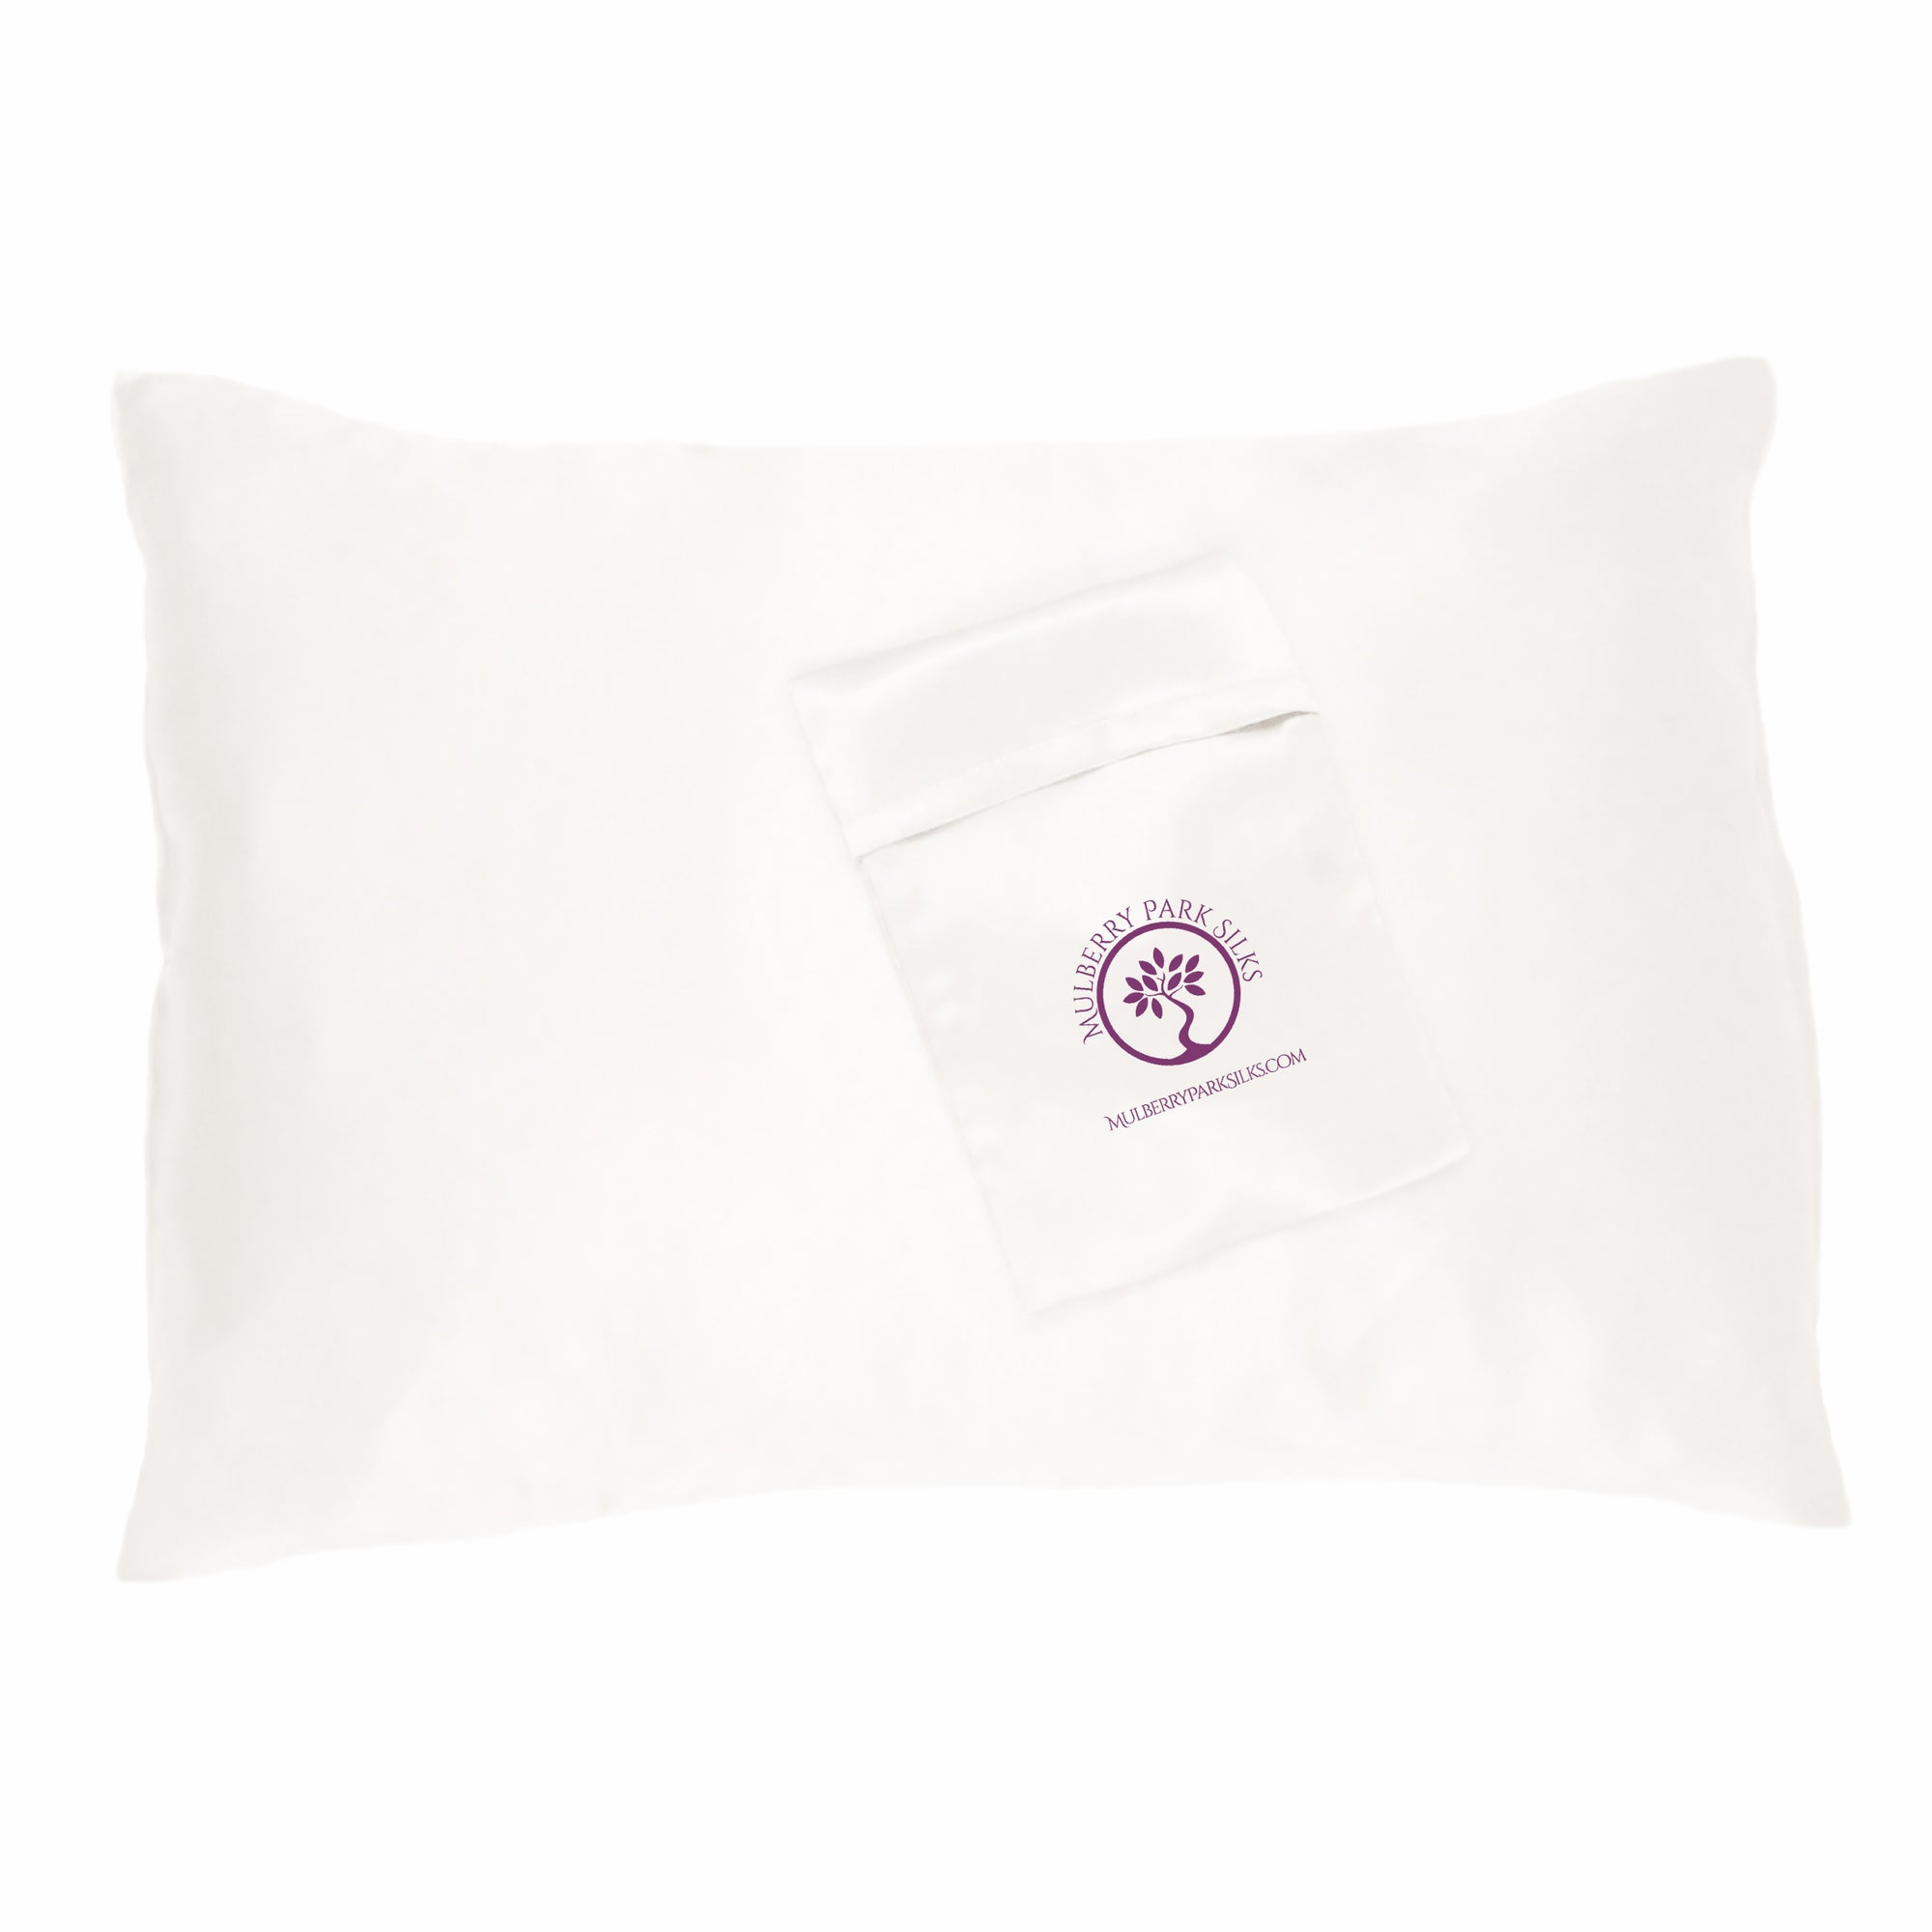 Ivory Silk Travel Pillowcase with travel bag by Mulberry Park Silks